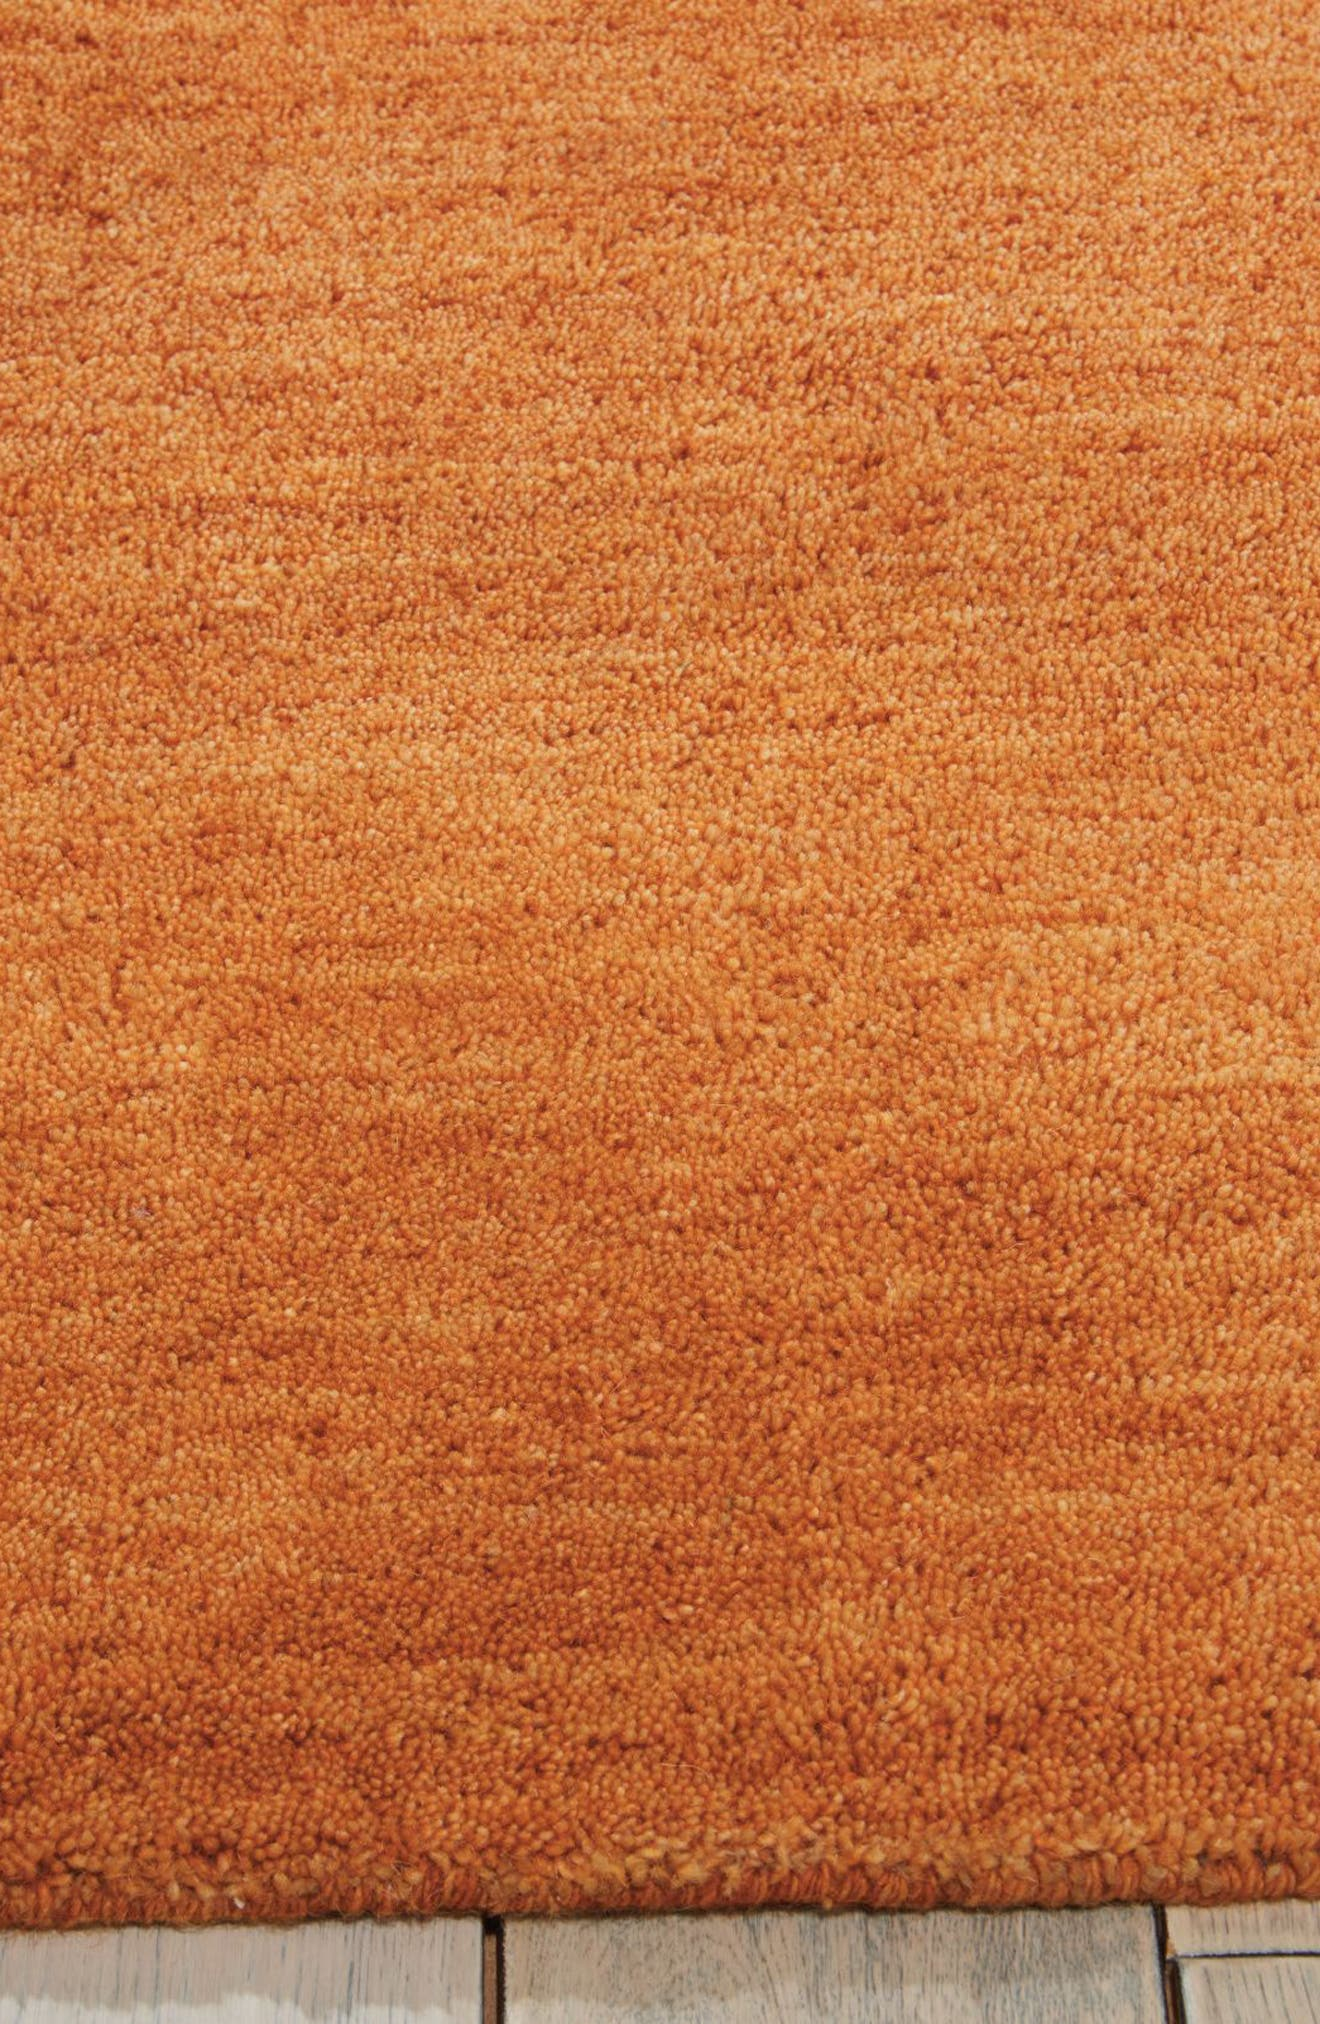 Linear Glow Wool Rug,                             Alternate thumbnail 4, color,                             211